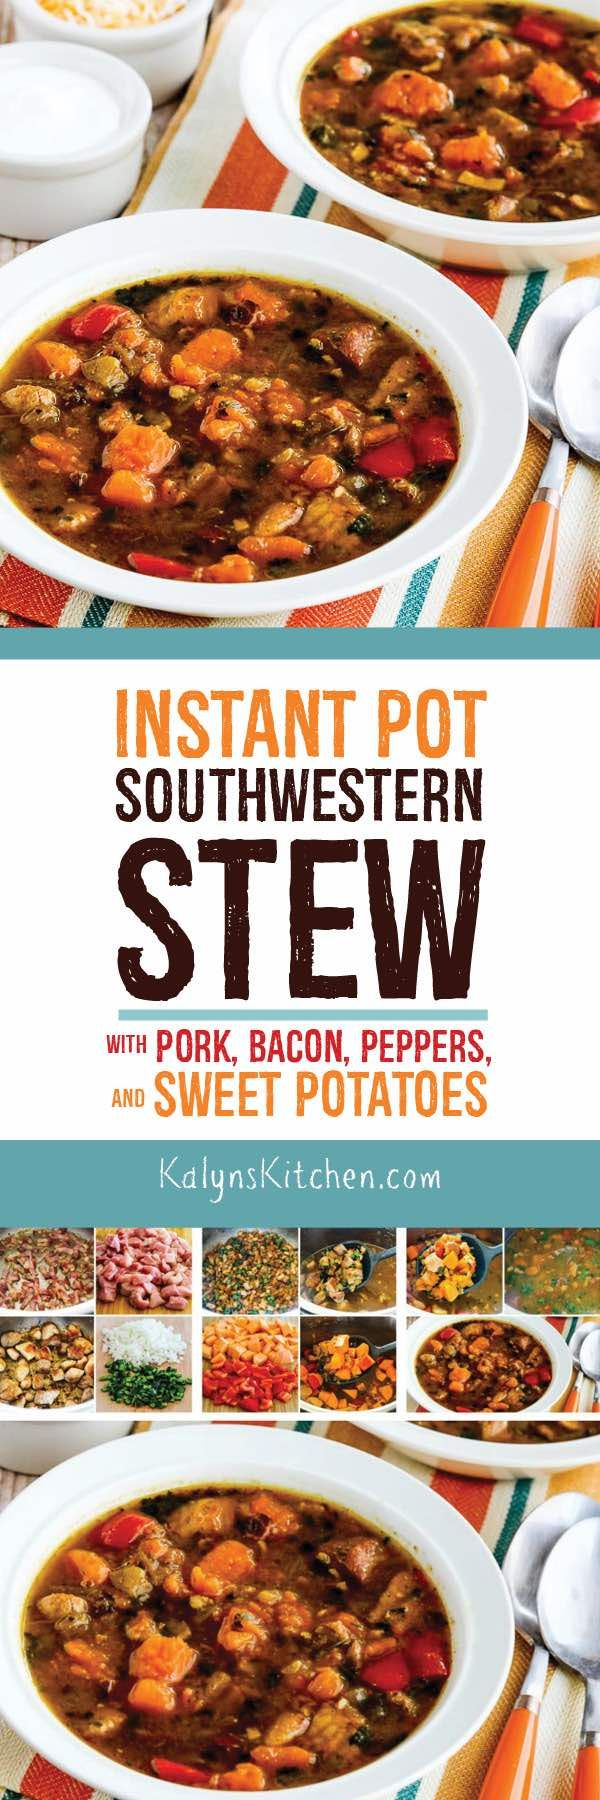 We loved this Instant Pot Southwestern Stew with Pork, Bacon, Peppers, and Sweet Potatoes with some grated Mexican blend cheese and sour cream, but this tasty Instant Pot Pork Stew can be Paleo if you skip the toppings. If you'd like a low-carb version of this, the recipe has instructions for skipping the sweet potatoes as well. [found on KalynsKitchen.com] #InstantPotRecipe #InstantPotStew #InstantPotPorkStew #InstantPotSouthwesternPorkStew